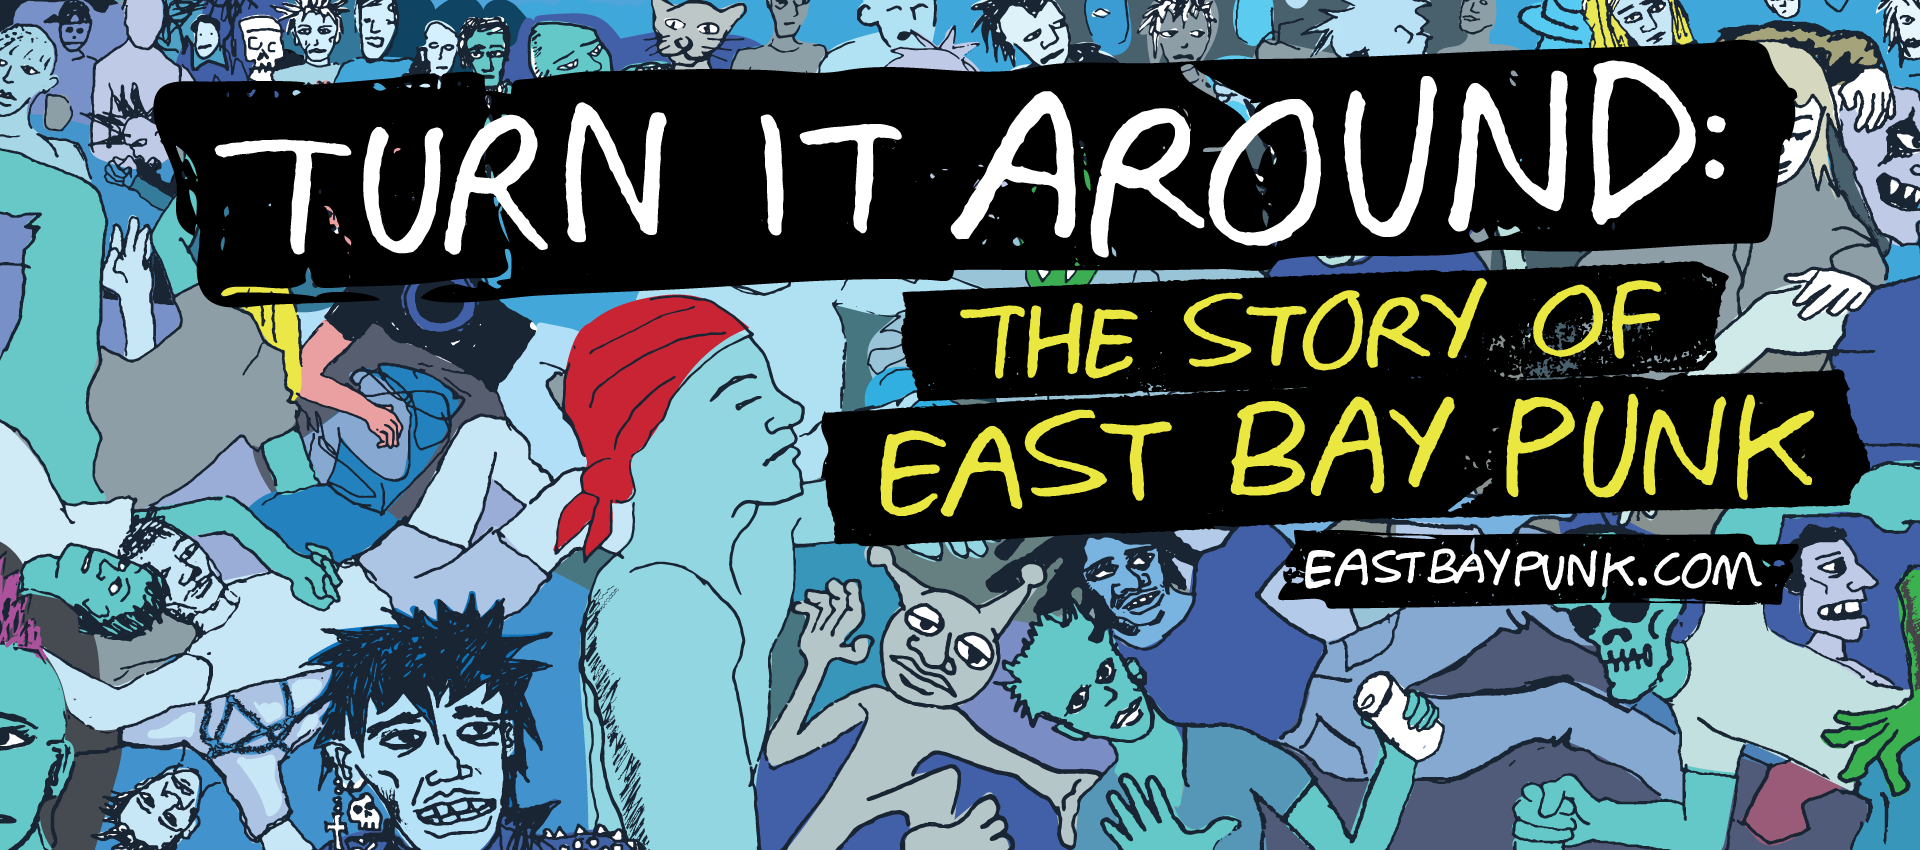 Turn It Around: The Story of East Bay Punk Documentary